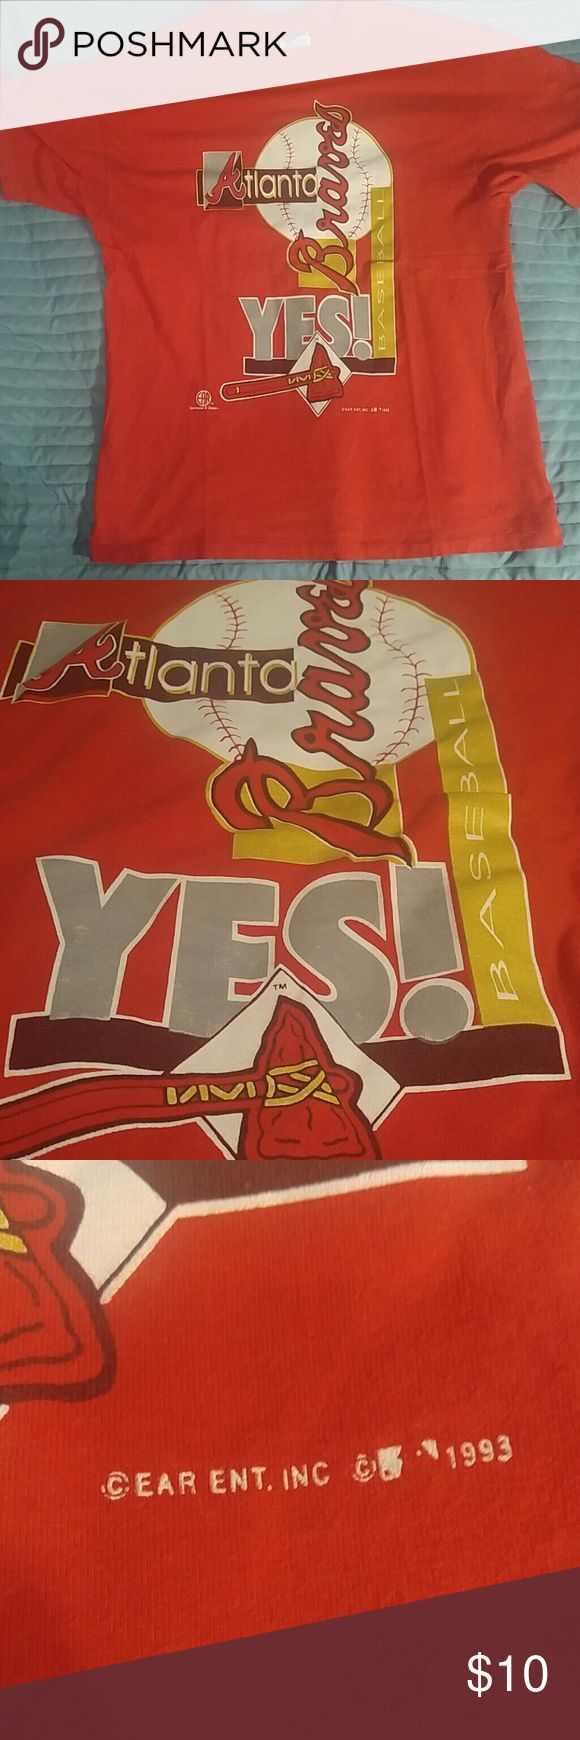 "Vintage Atlanta Braves t shirt L Beautiful vintage Atlanta Braves Baseball ""Yes!"" t shirt from the Braves' golden era in the 90's. Just added but on sale this weekend as part of my Opening Day Sale. Rare item, get it while you can! Shirts Tees - Short Sleeve"